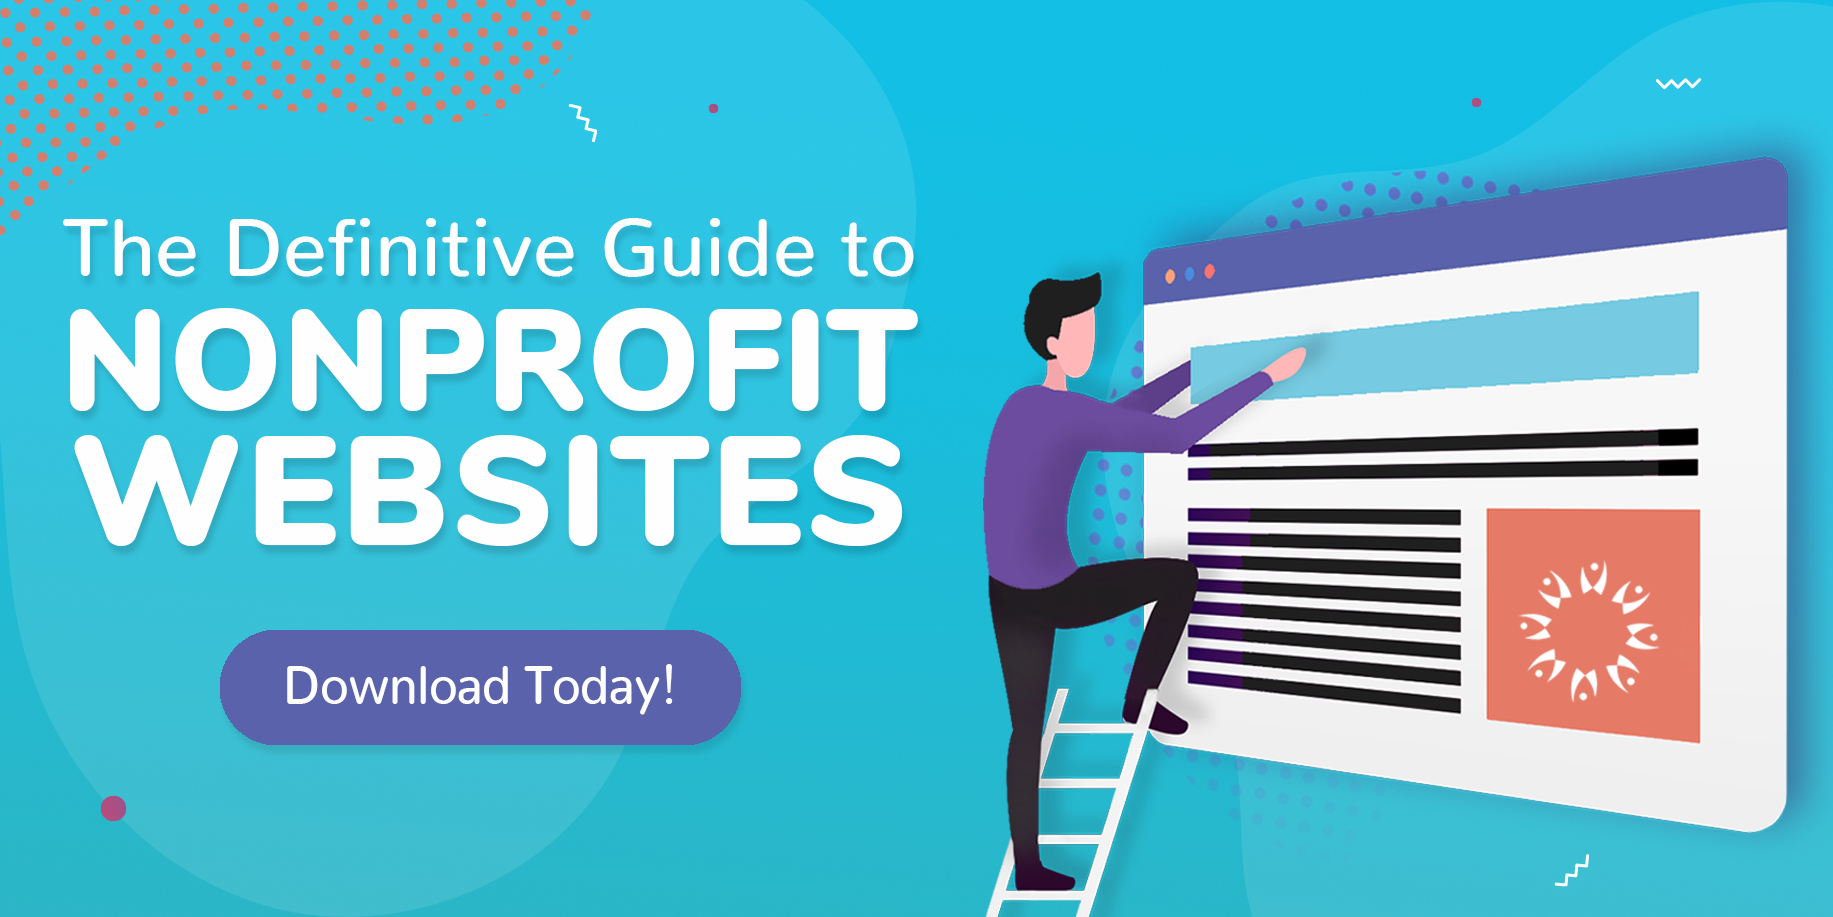 The Definitive Guide to Nonprofit Websites CTA